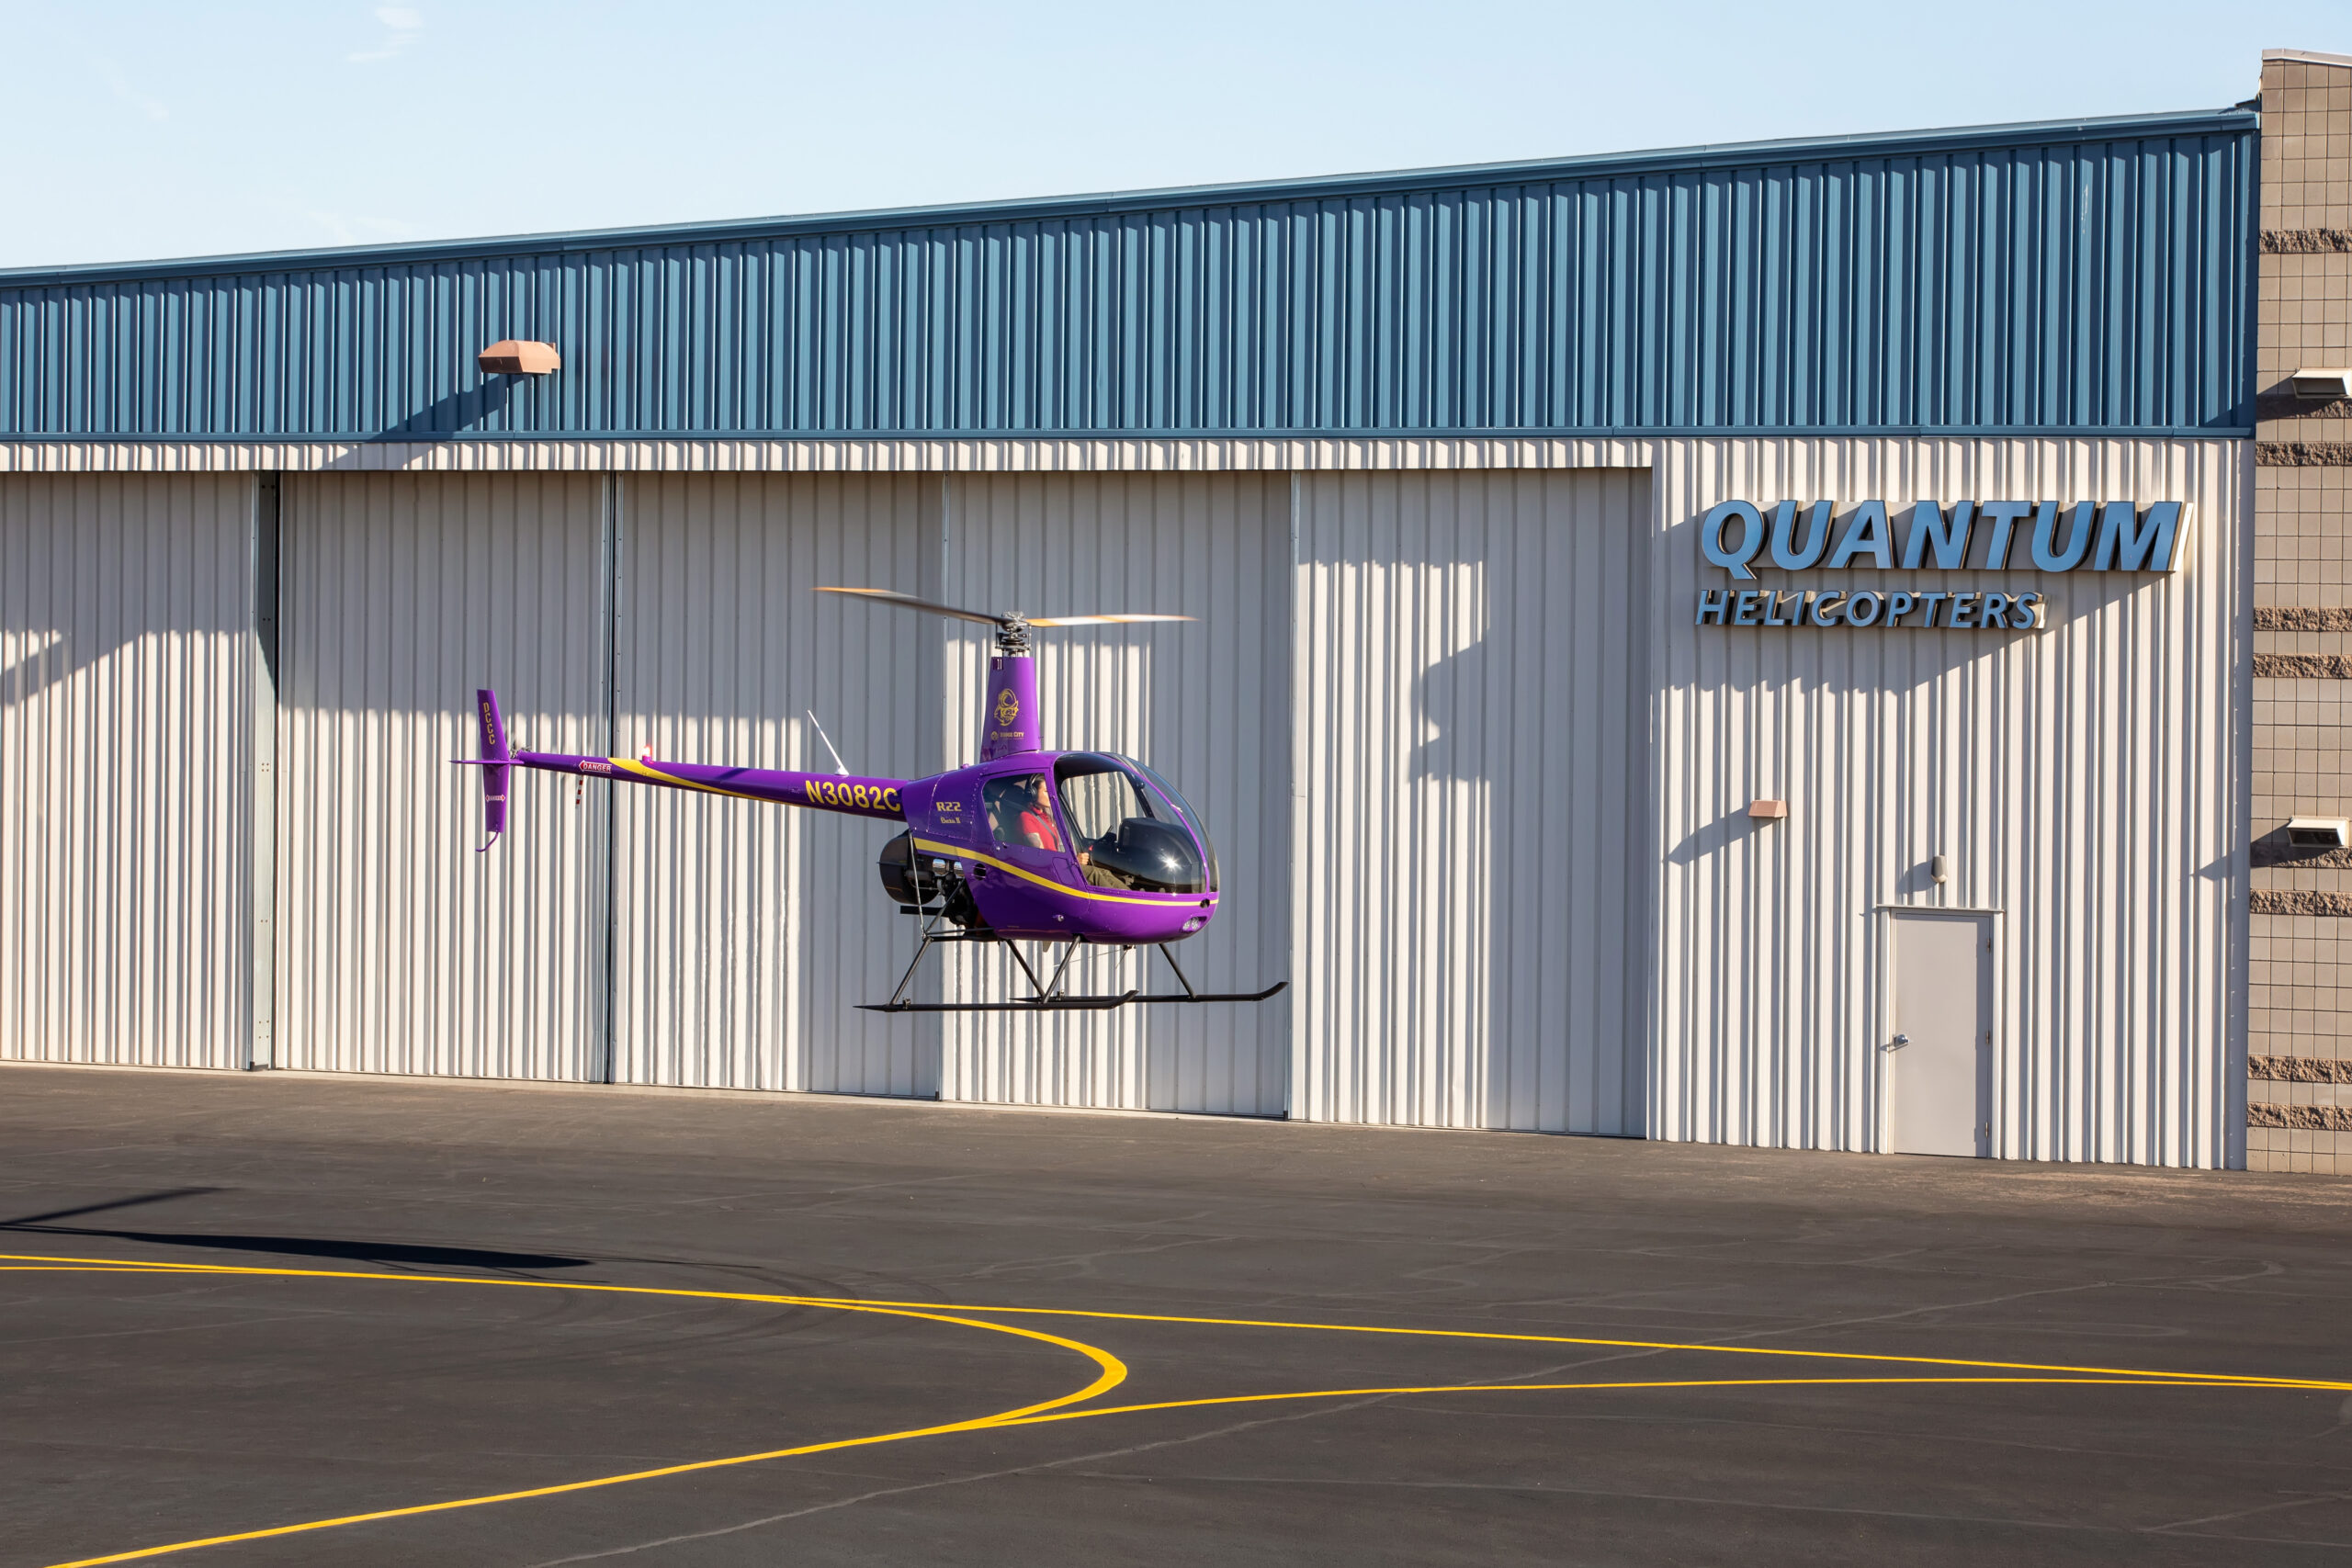 Purple Helicopter in front of Quantum Building